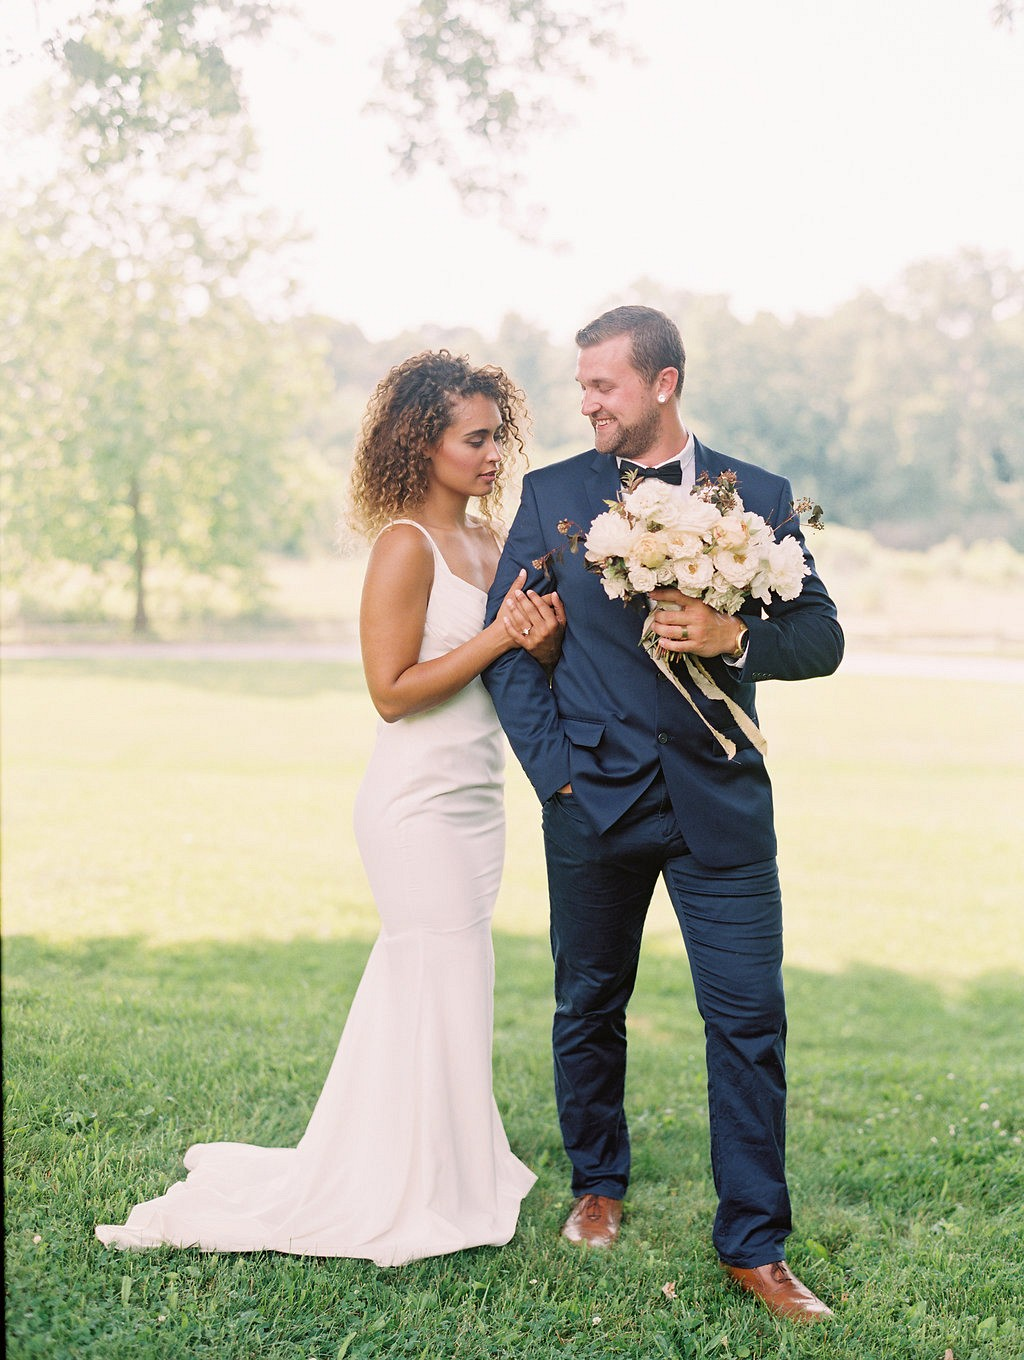 Effortless Bridal Style for a Virginia Outdoor Wedding